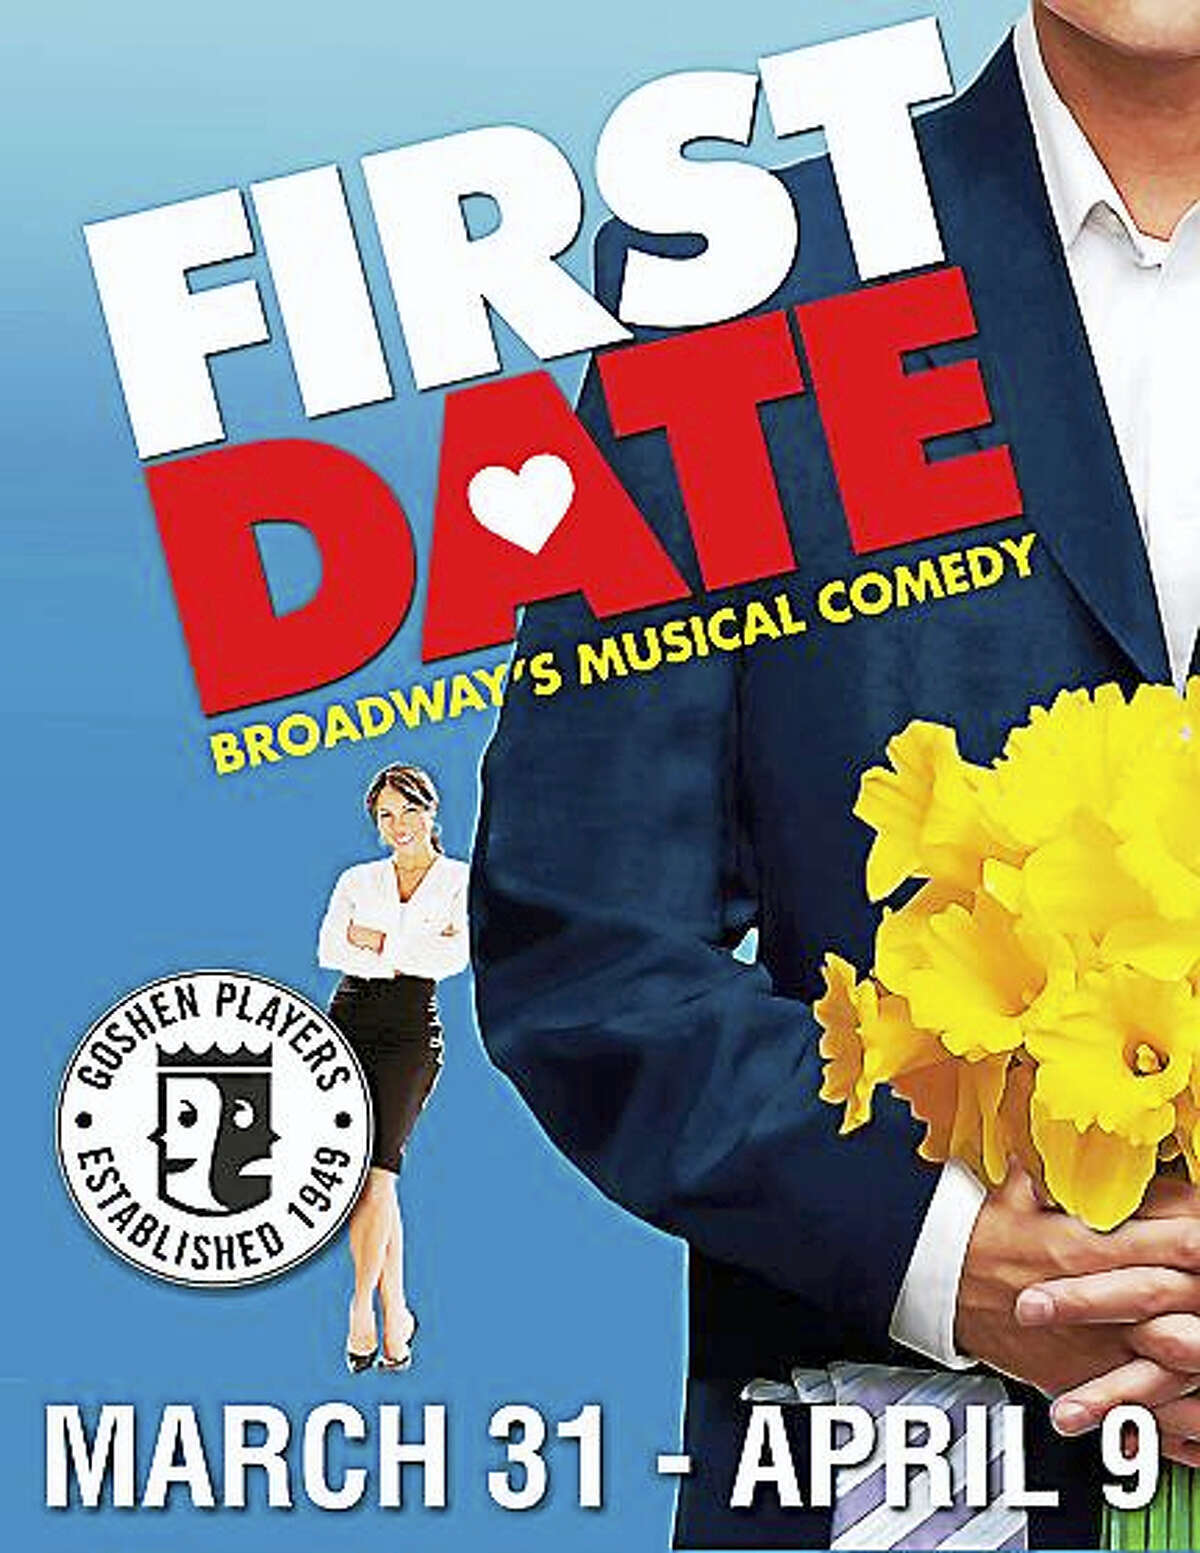 The Goshen Players' production, First Date, opens March 31.